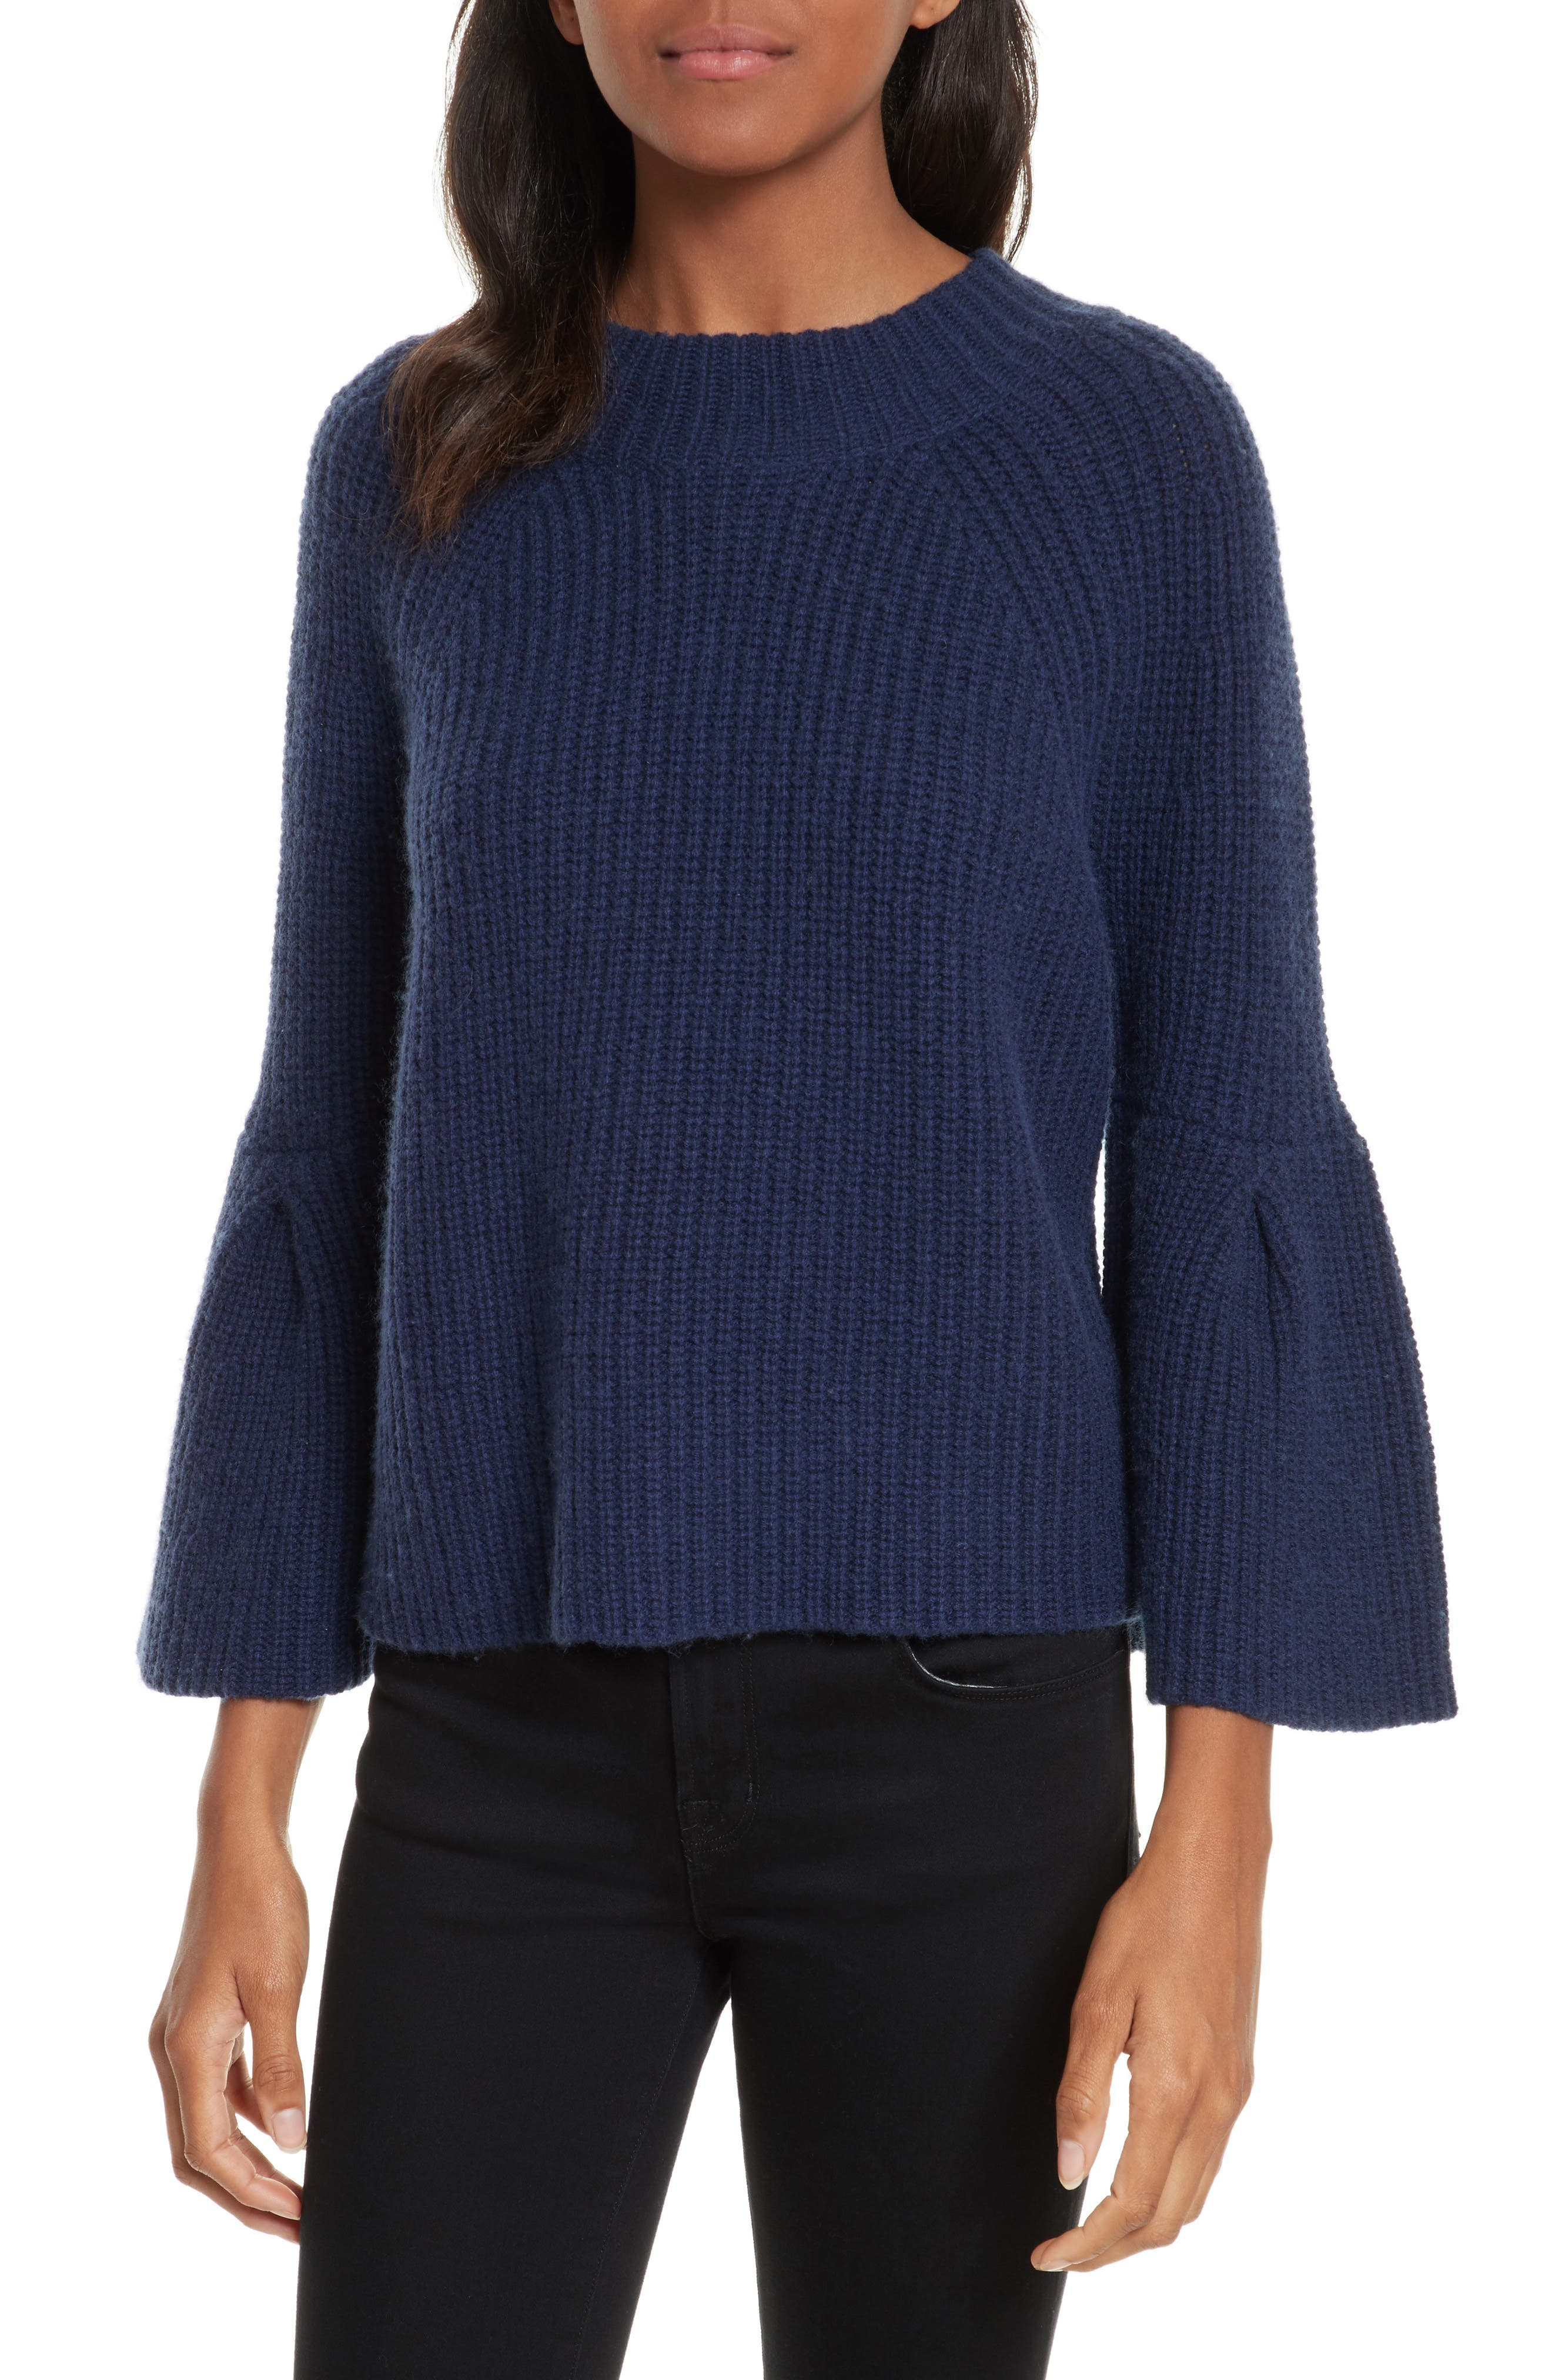 Ingrit Wool & Cashmere Sweater,                         Main,                         color, Deep Navy